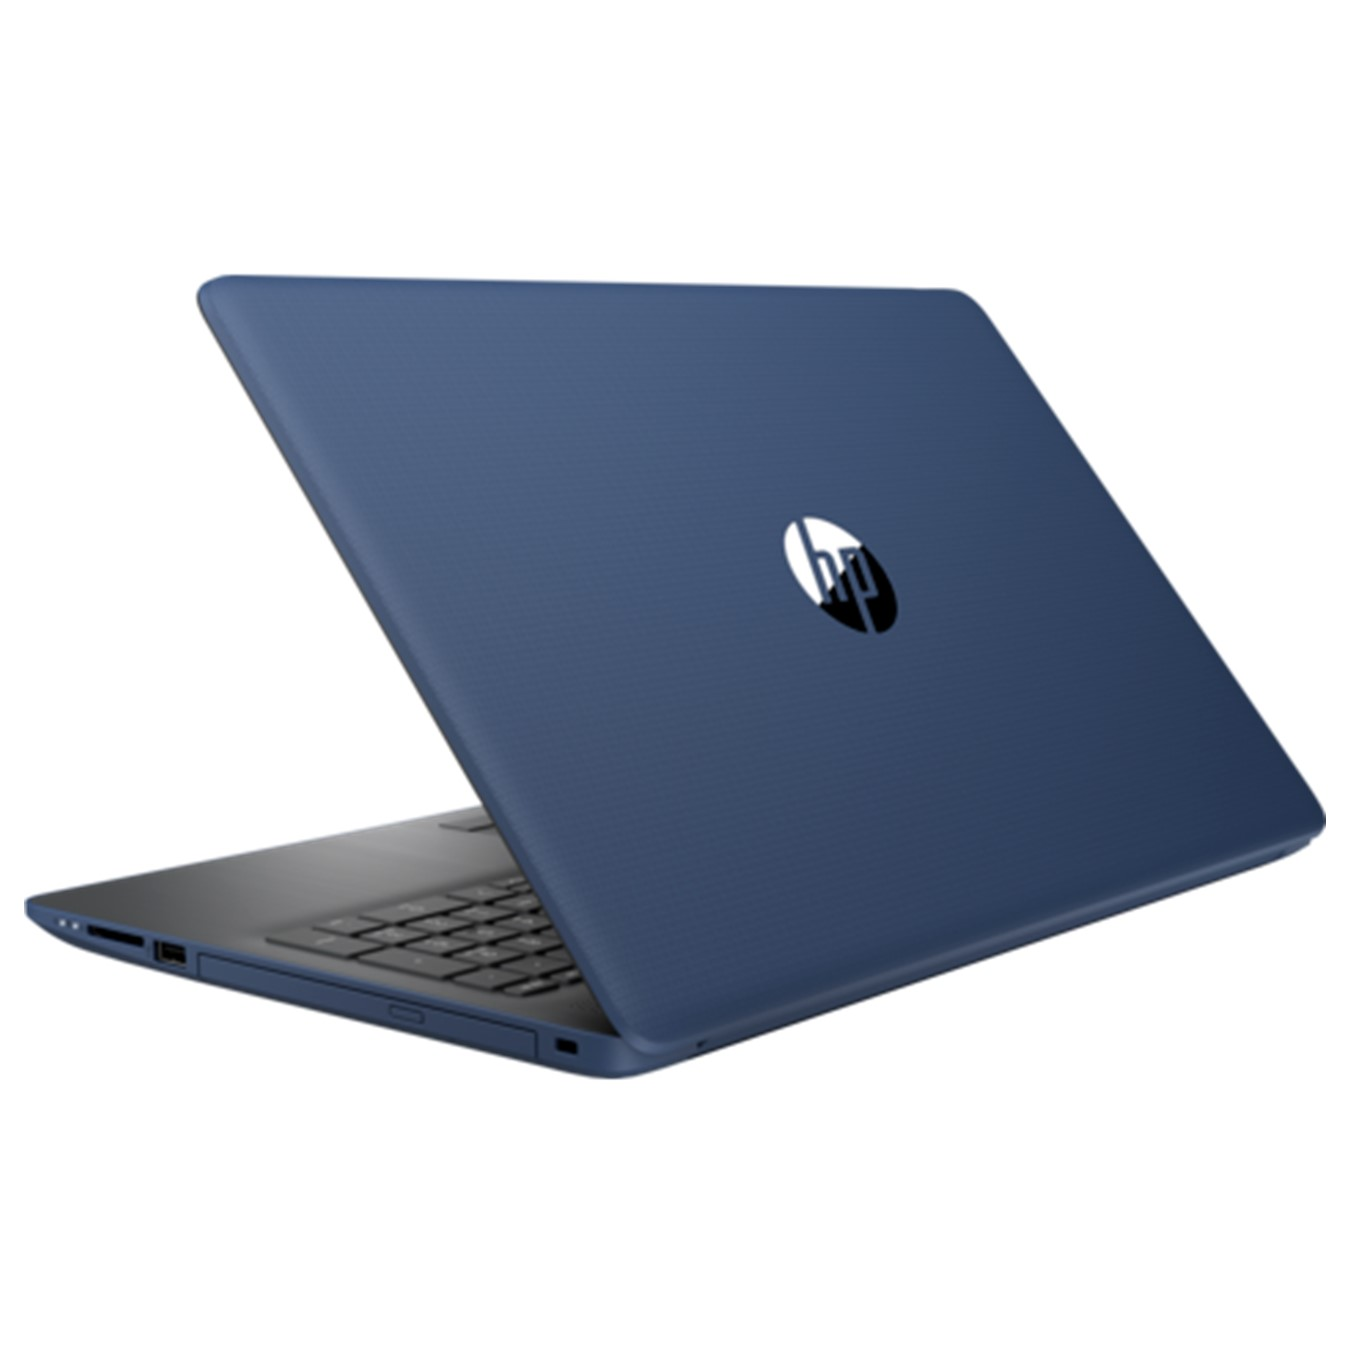 Porttil Hp 15-da0069ns - I7-8550u 1.8ghz - 8gb - 1tb - 15.6/39.6cm - Hdmi - Wifi Bgn/ac - Bt - W10 - Azul Plata 0.0